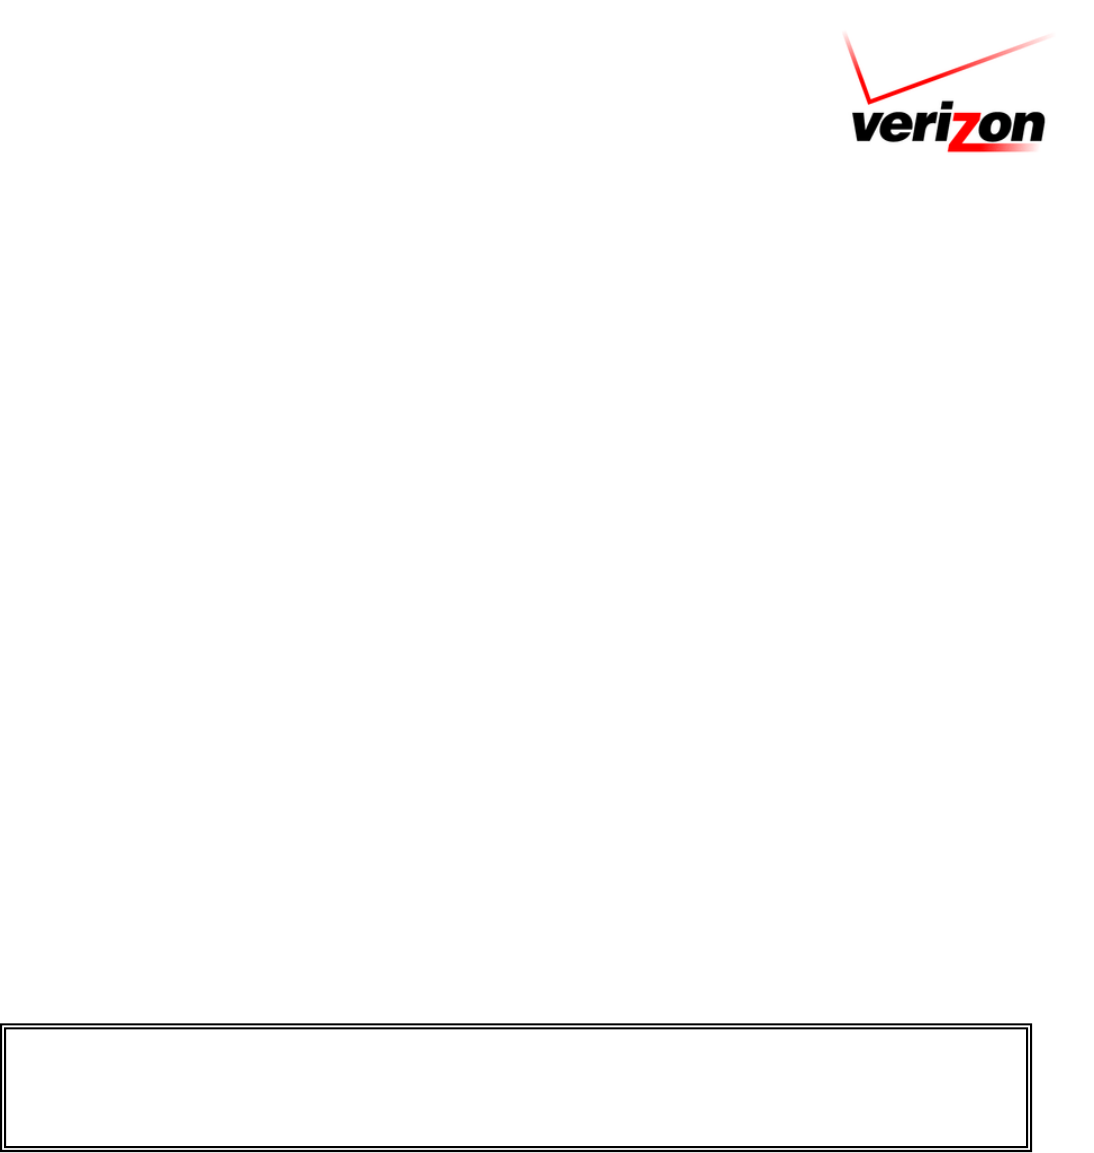 Free Printable Verizon Job Application Form